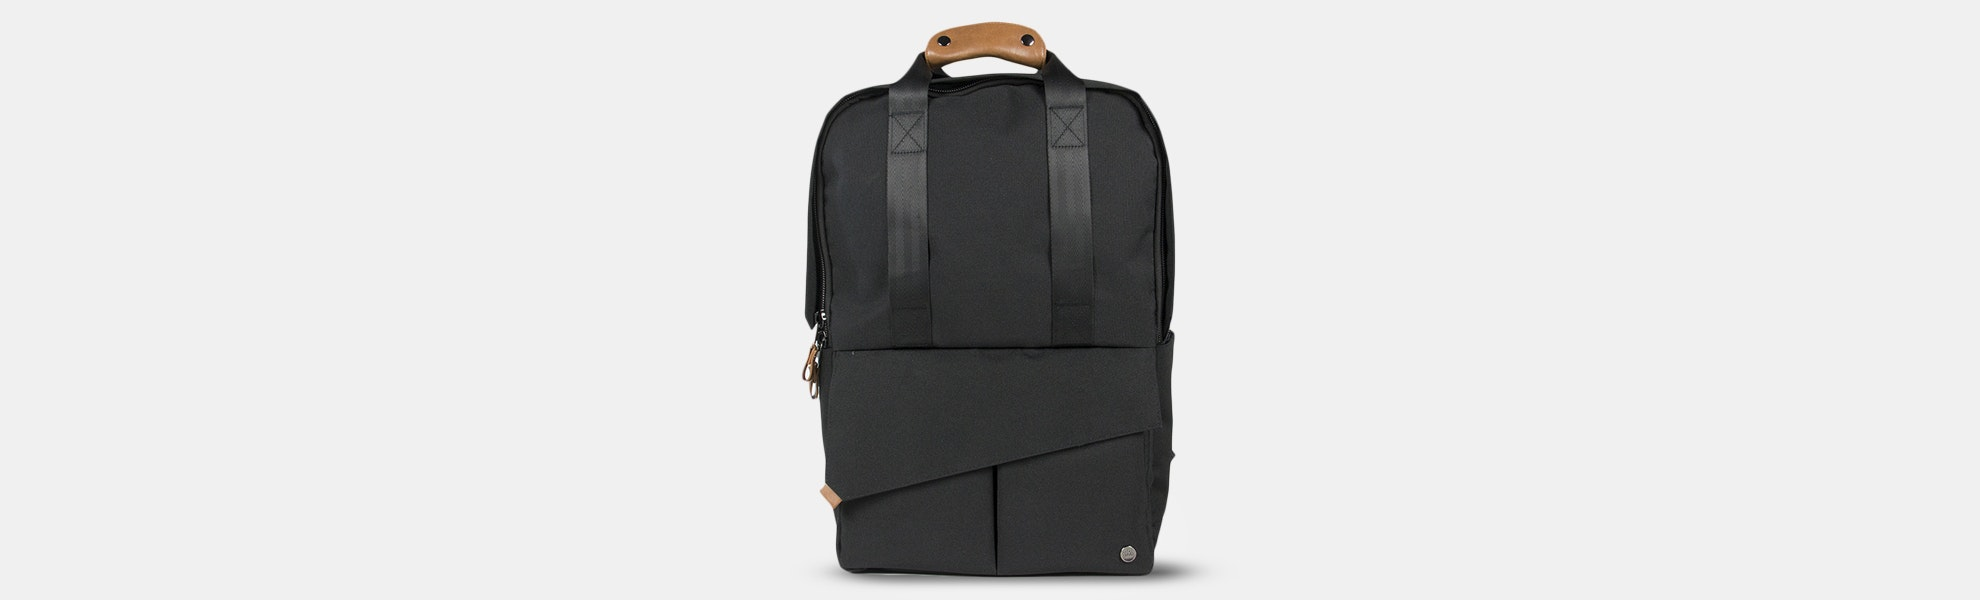 PKG Rosseau Backpack